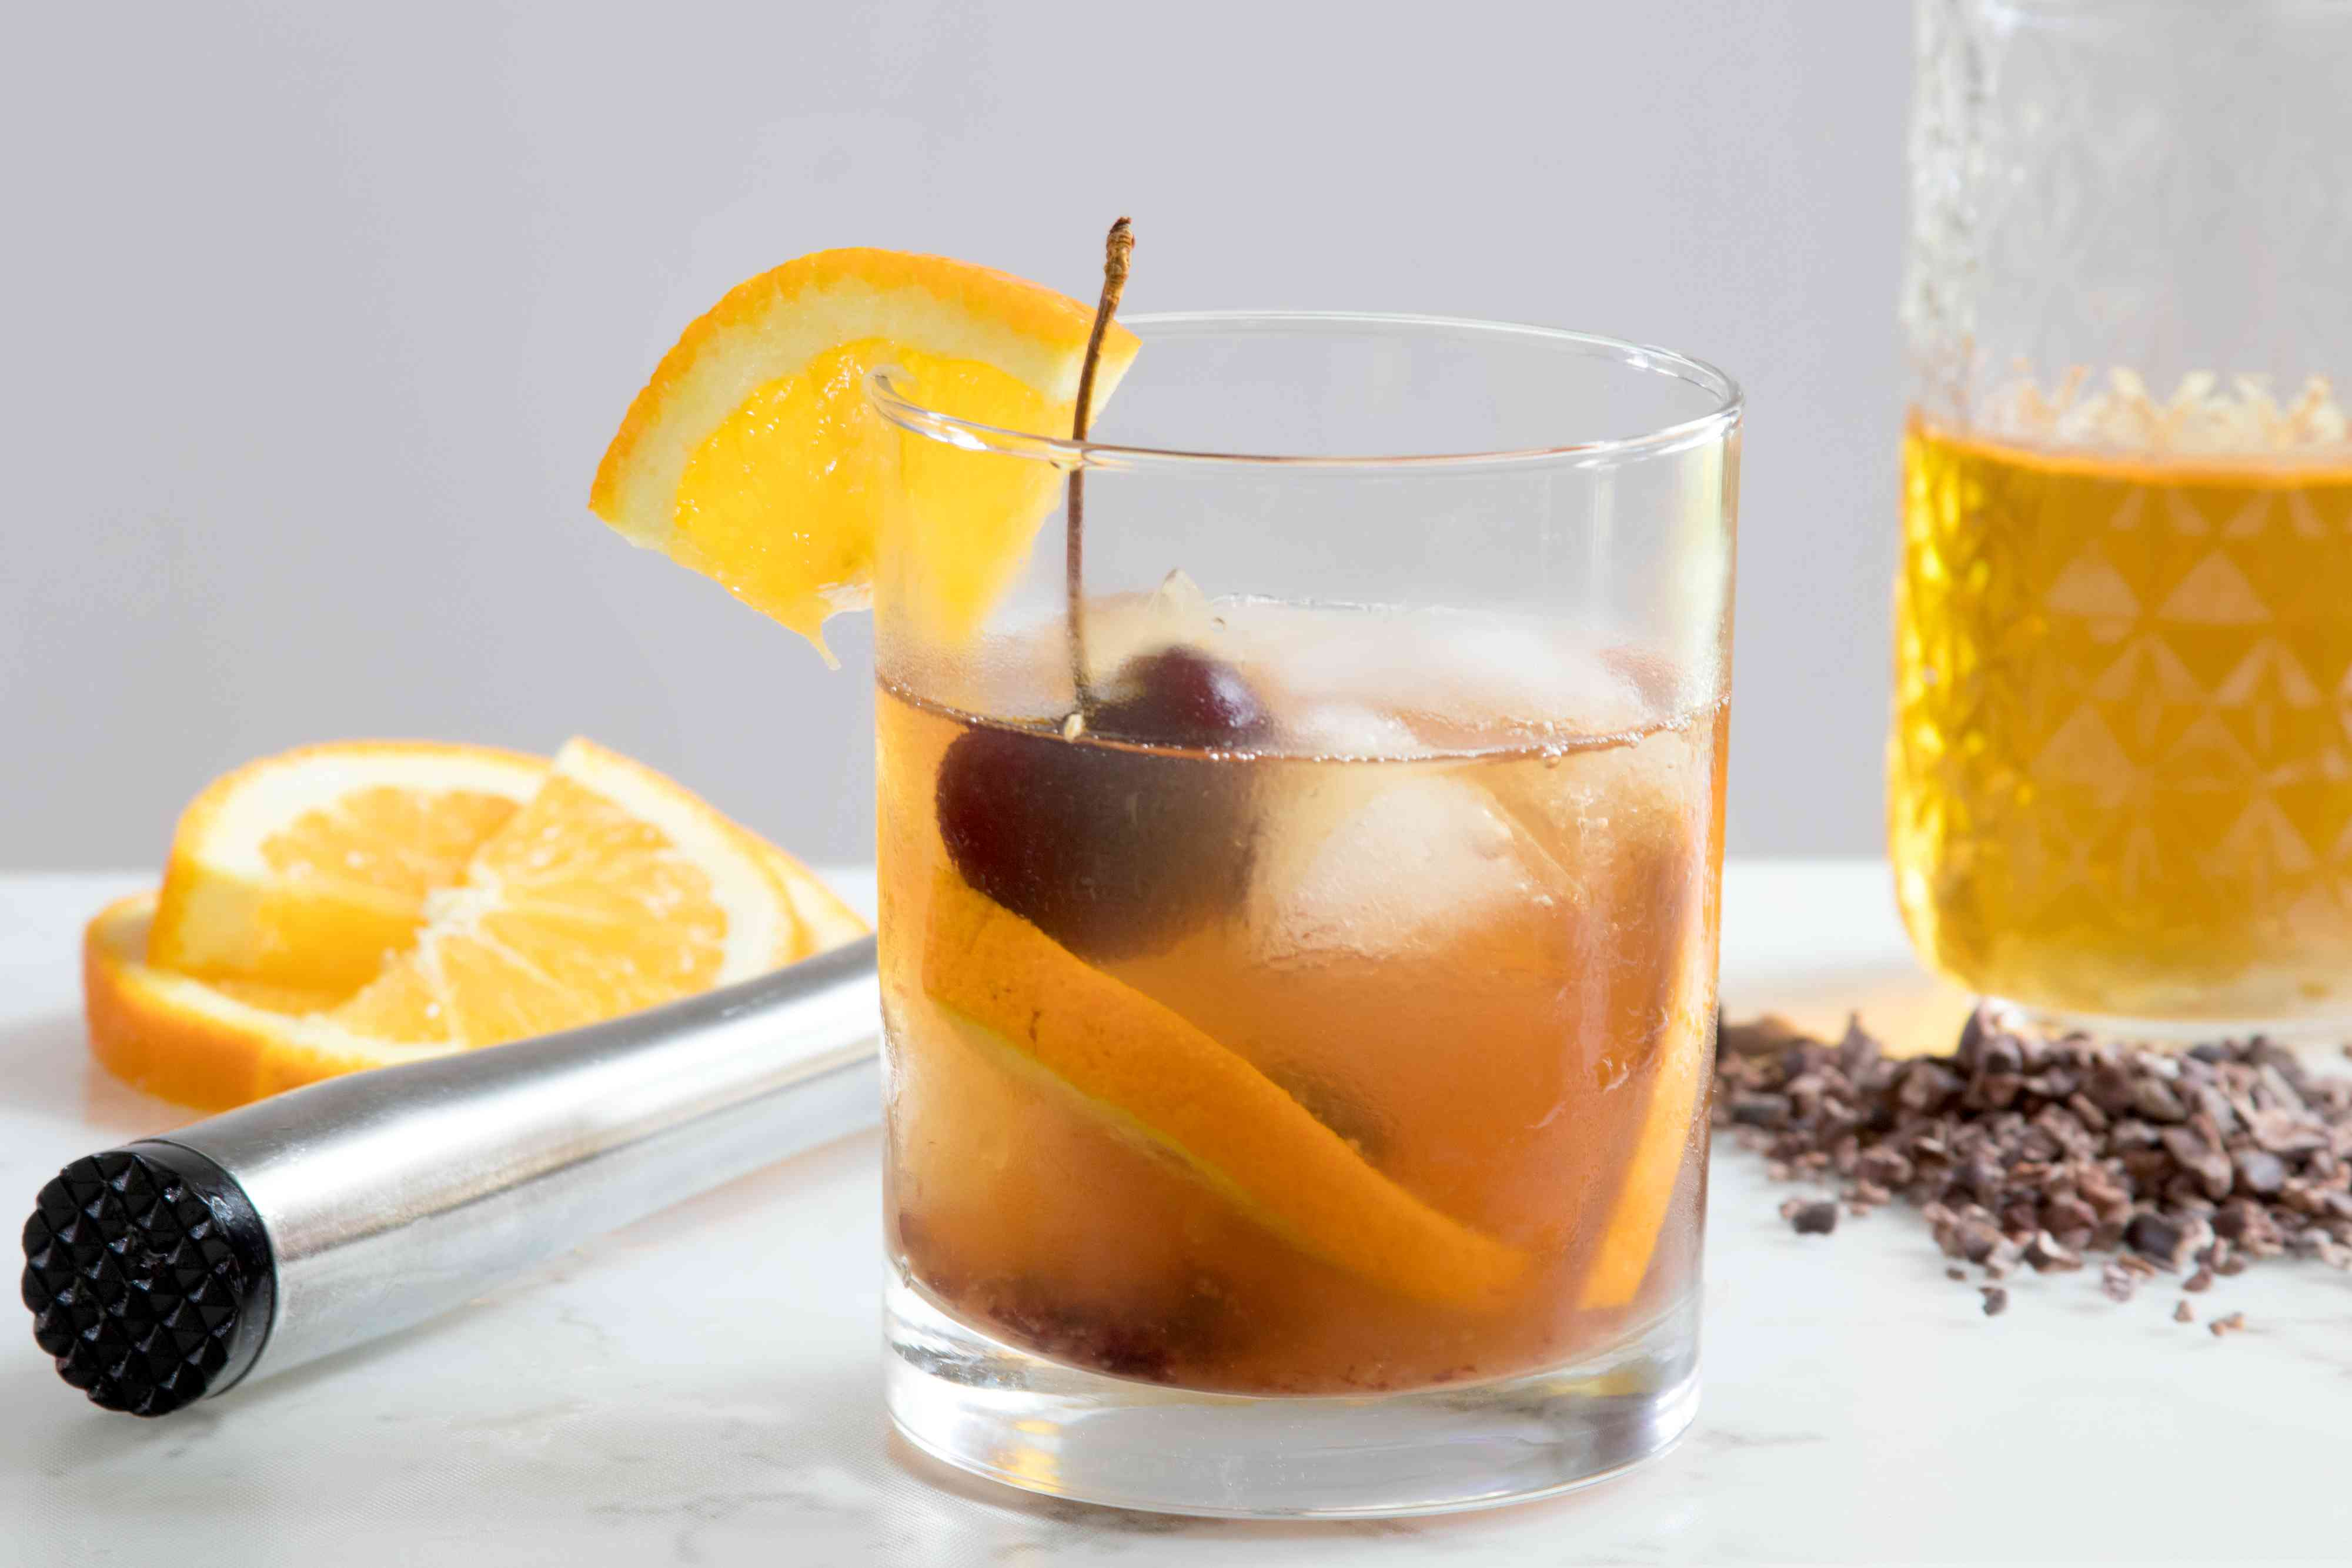 Cocoa Old-Fashioned Recipe With Cocoa-Infused Rye Whiskey